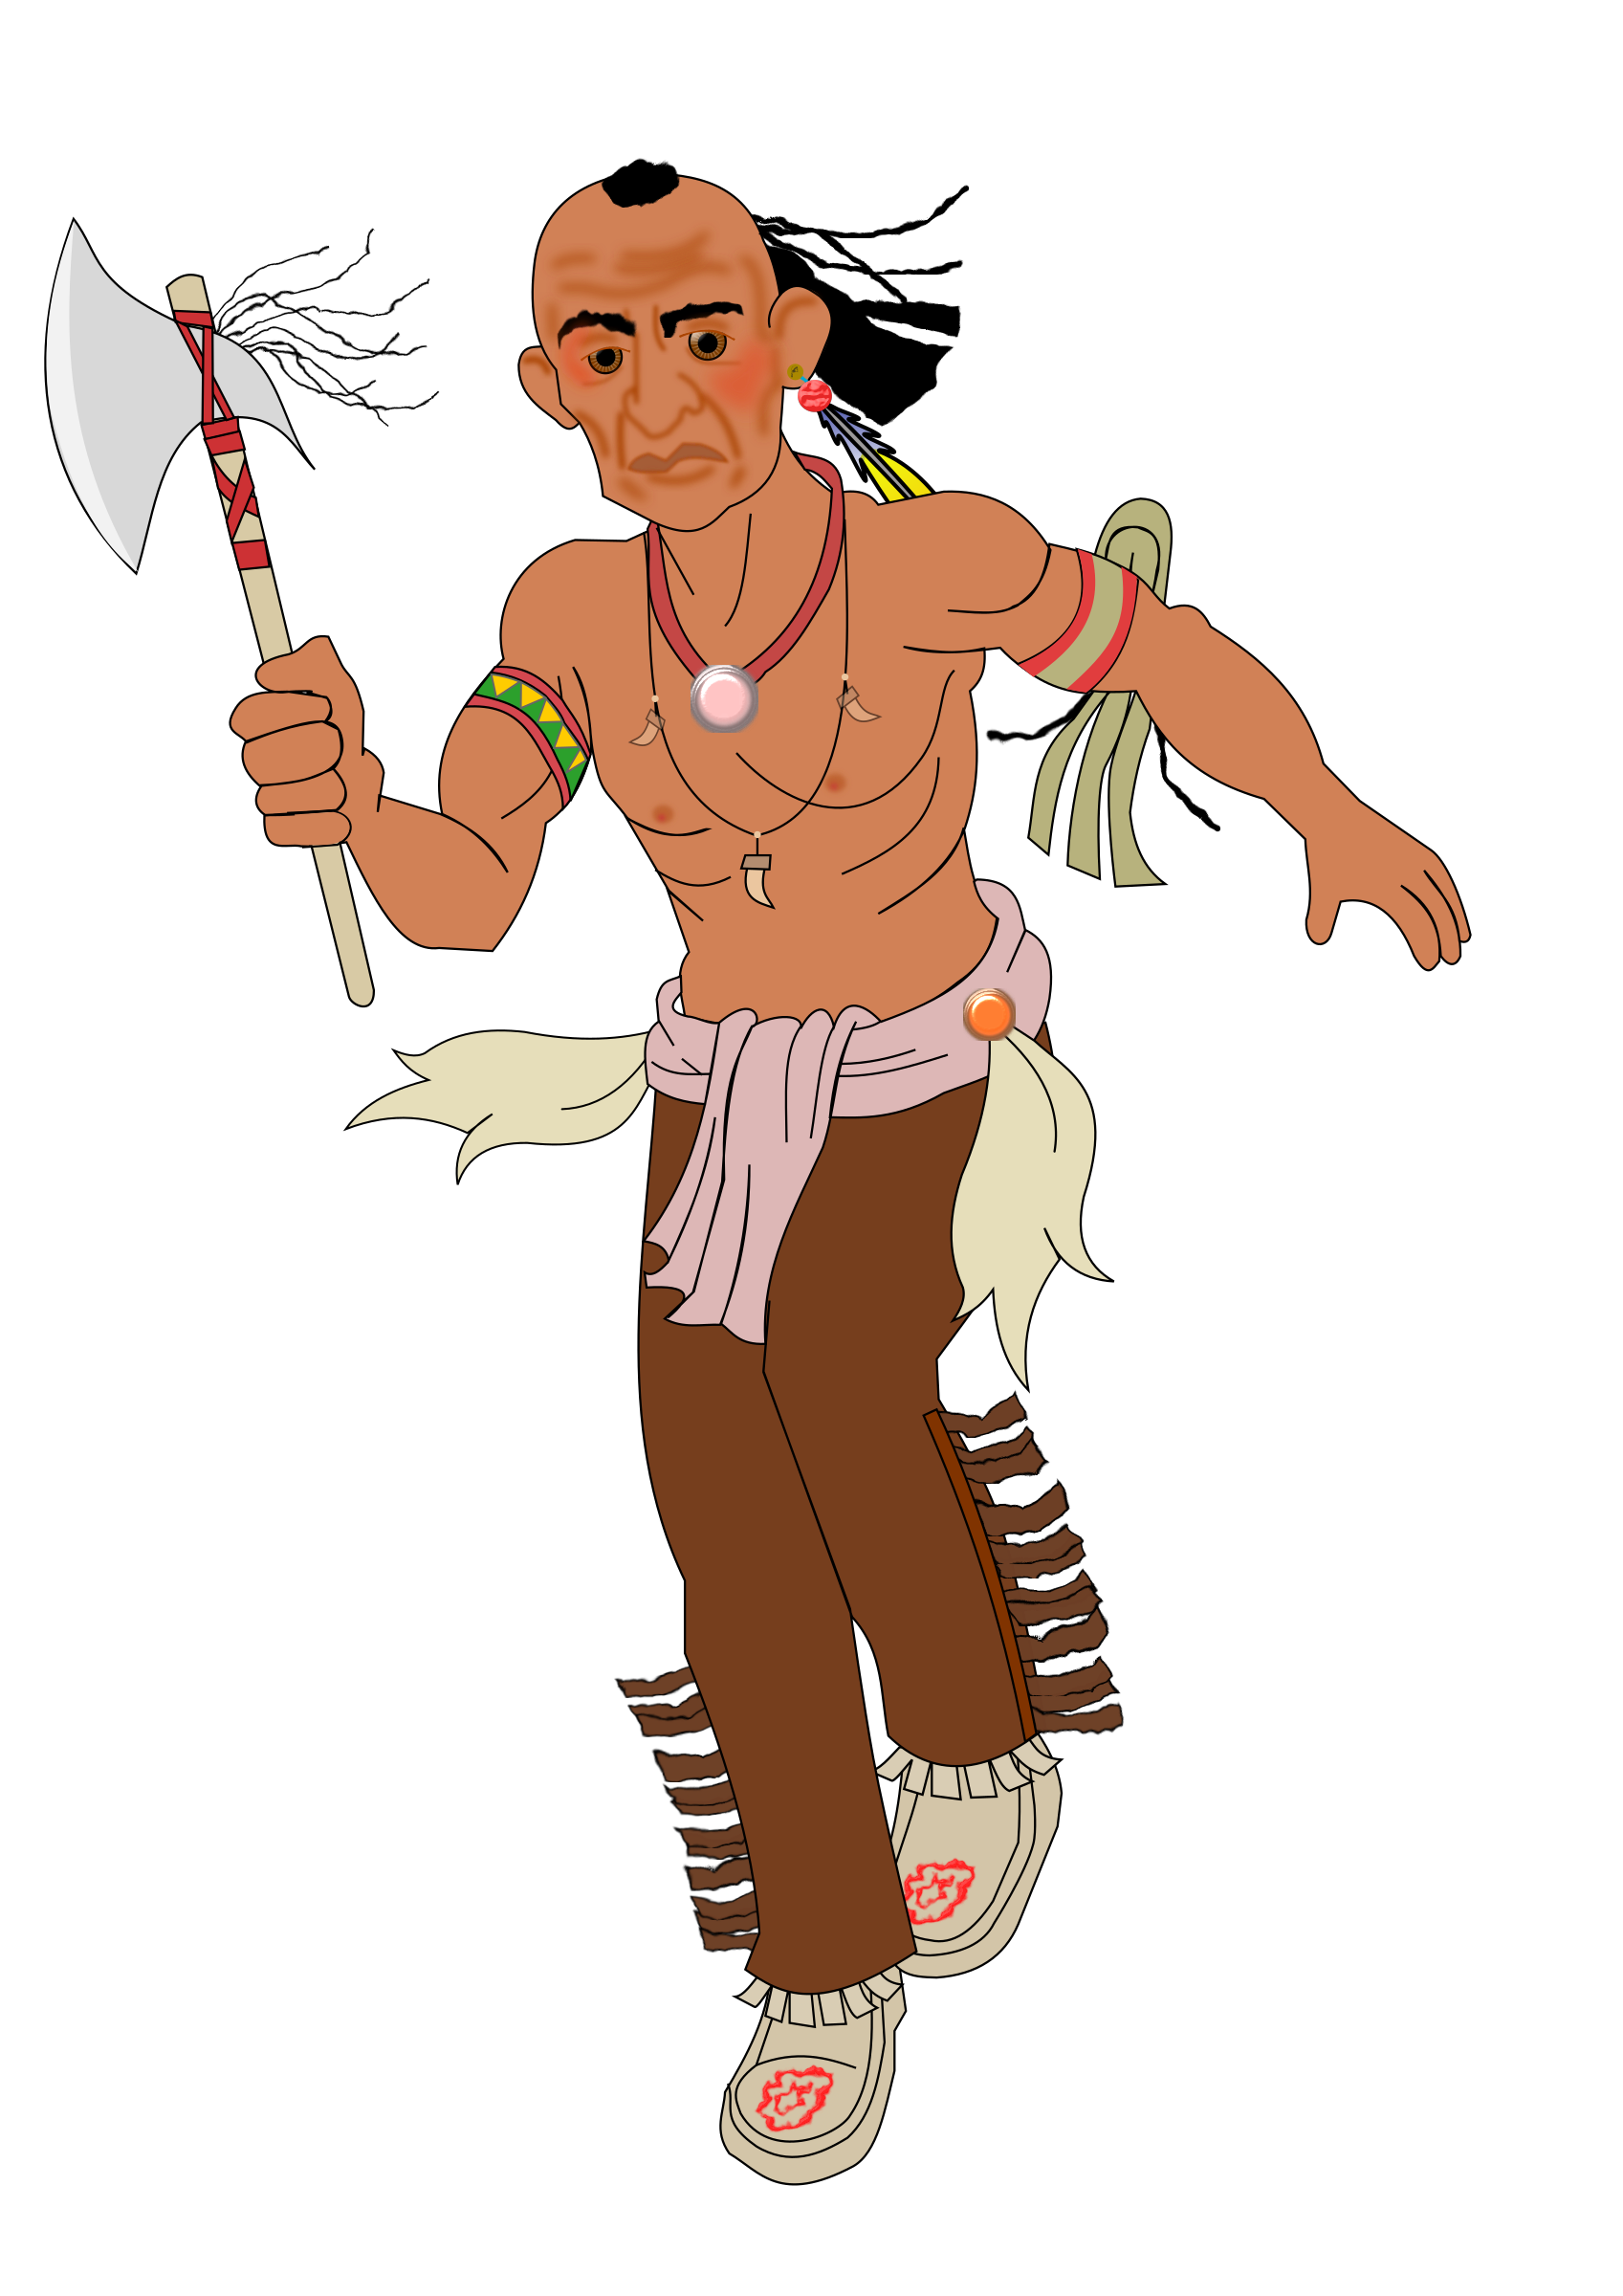 American indians png image. Indian clipart transparent